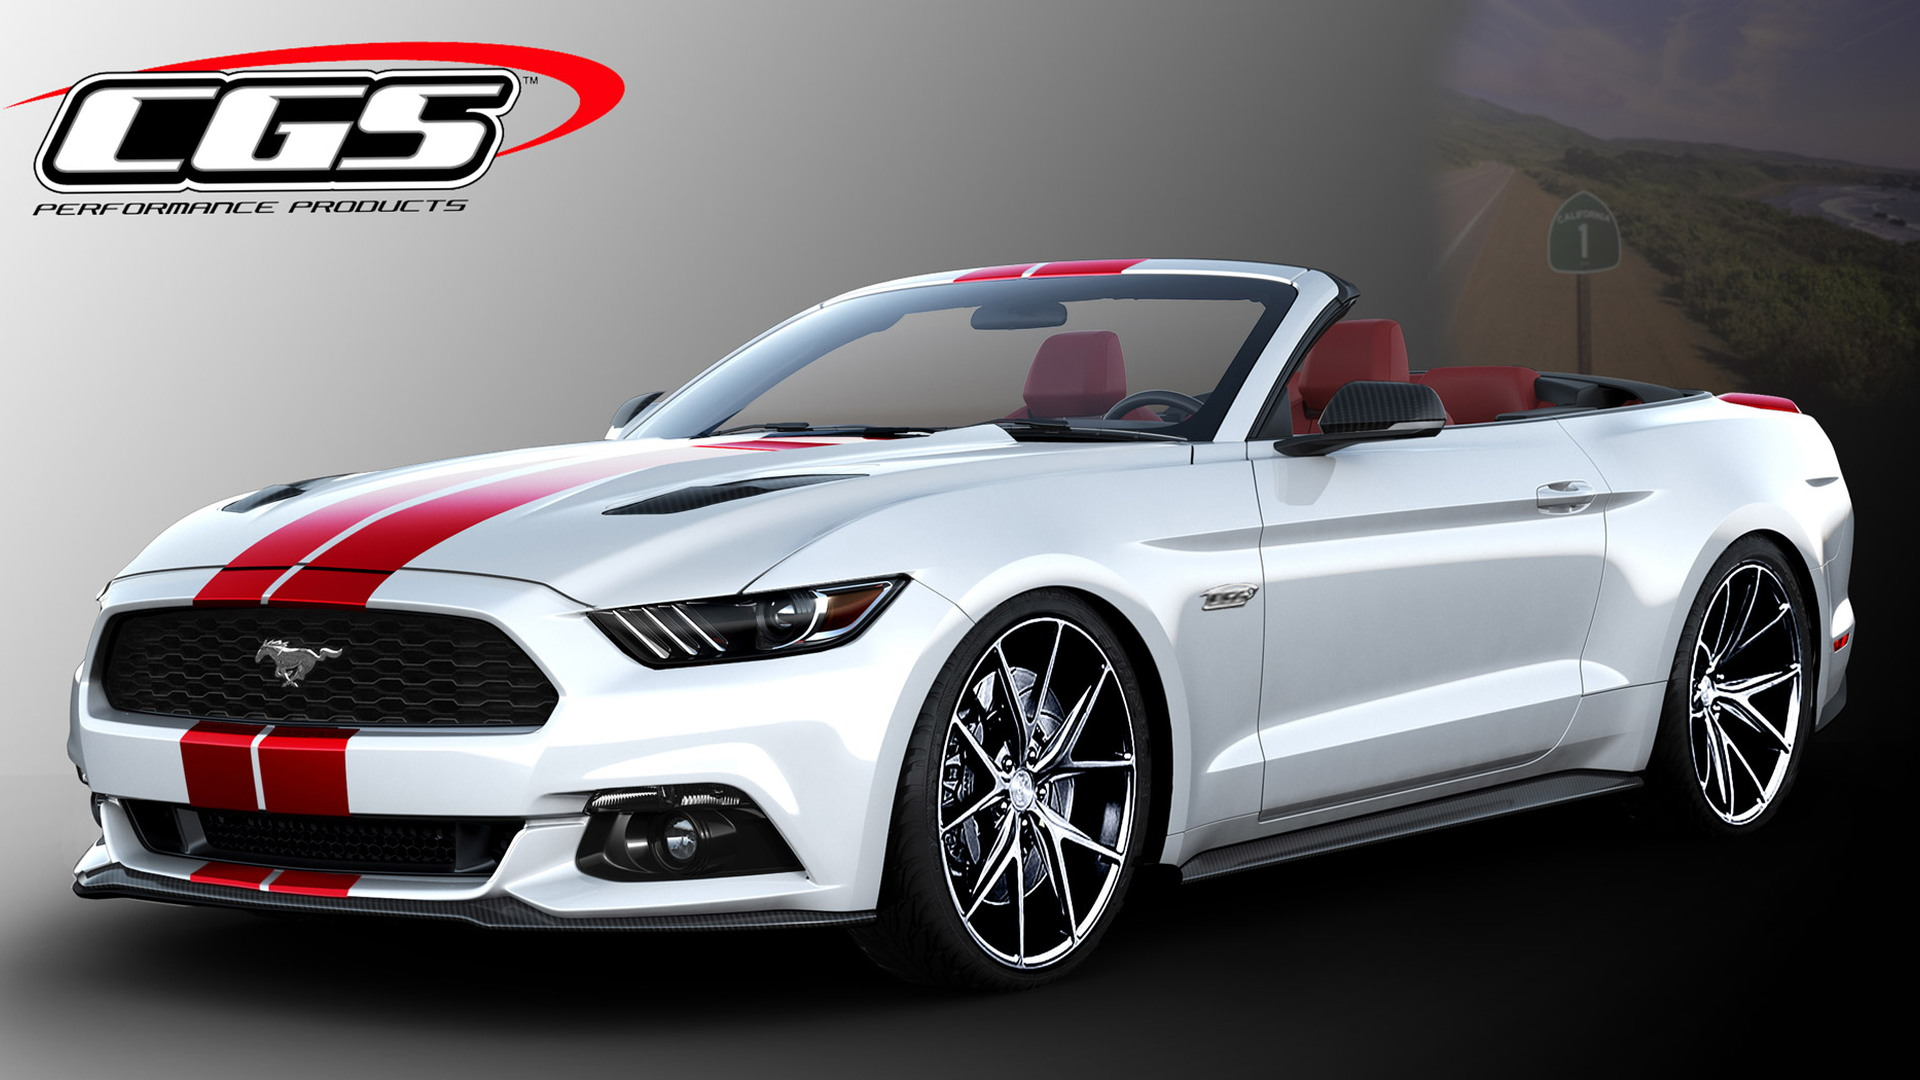 2016 Ford Mustang by CGS, 2015 SEMA show